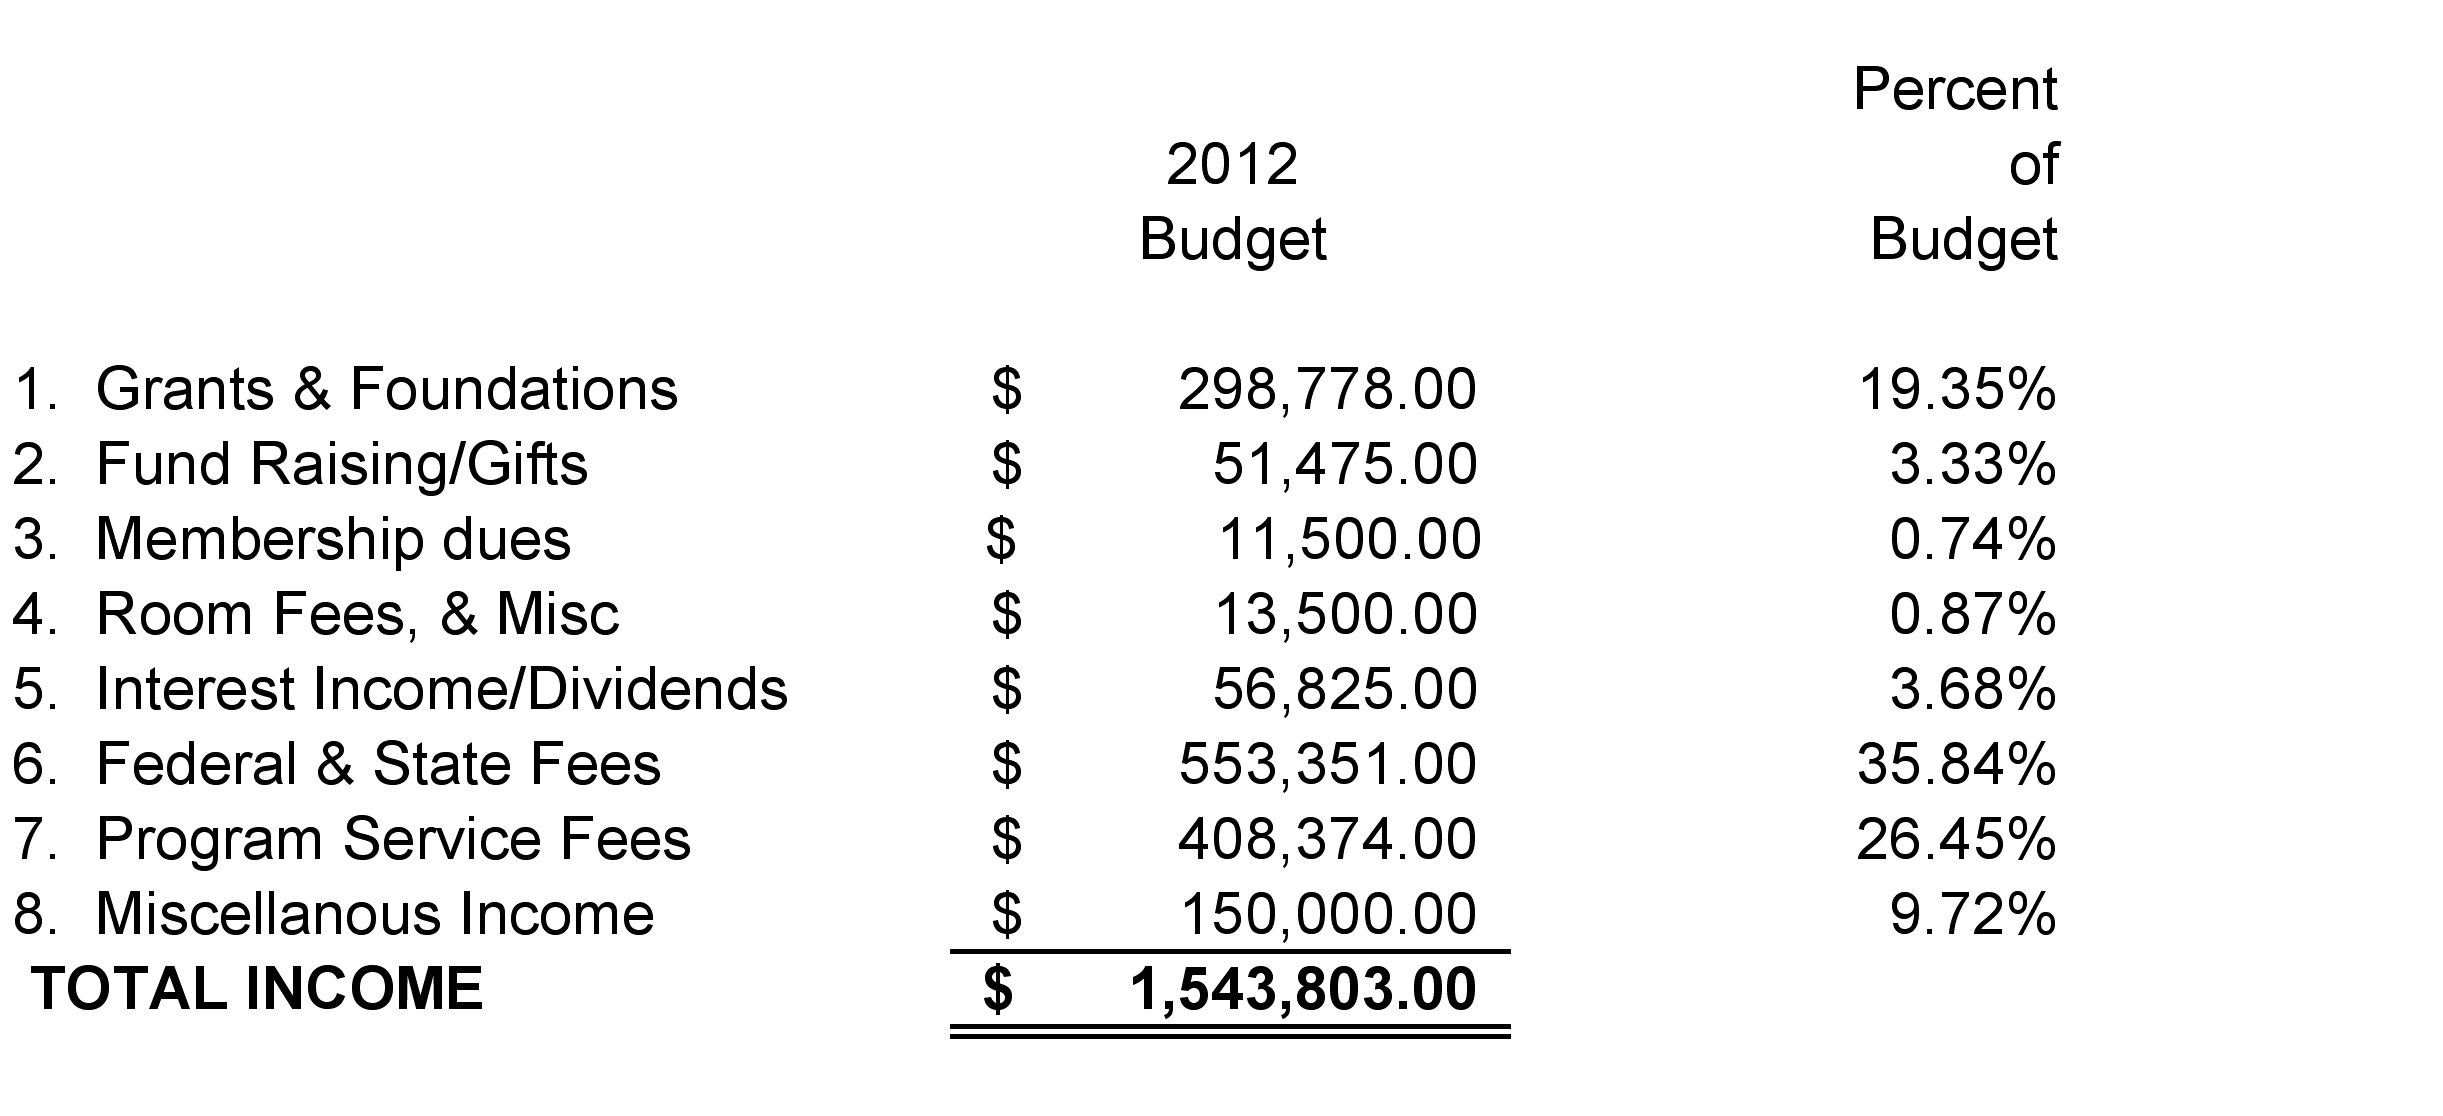 budget for fiscal year 2012 1/1/12-12/31/12 Does not include YWCA Greater Rhode Island s income